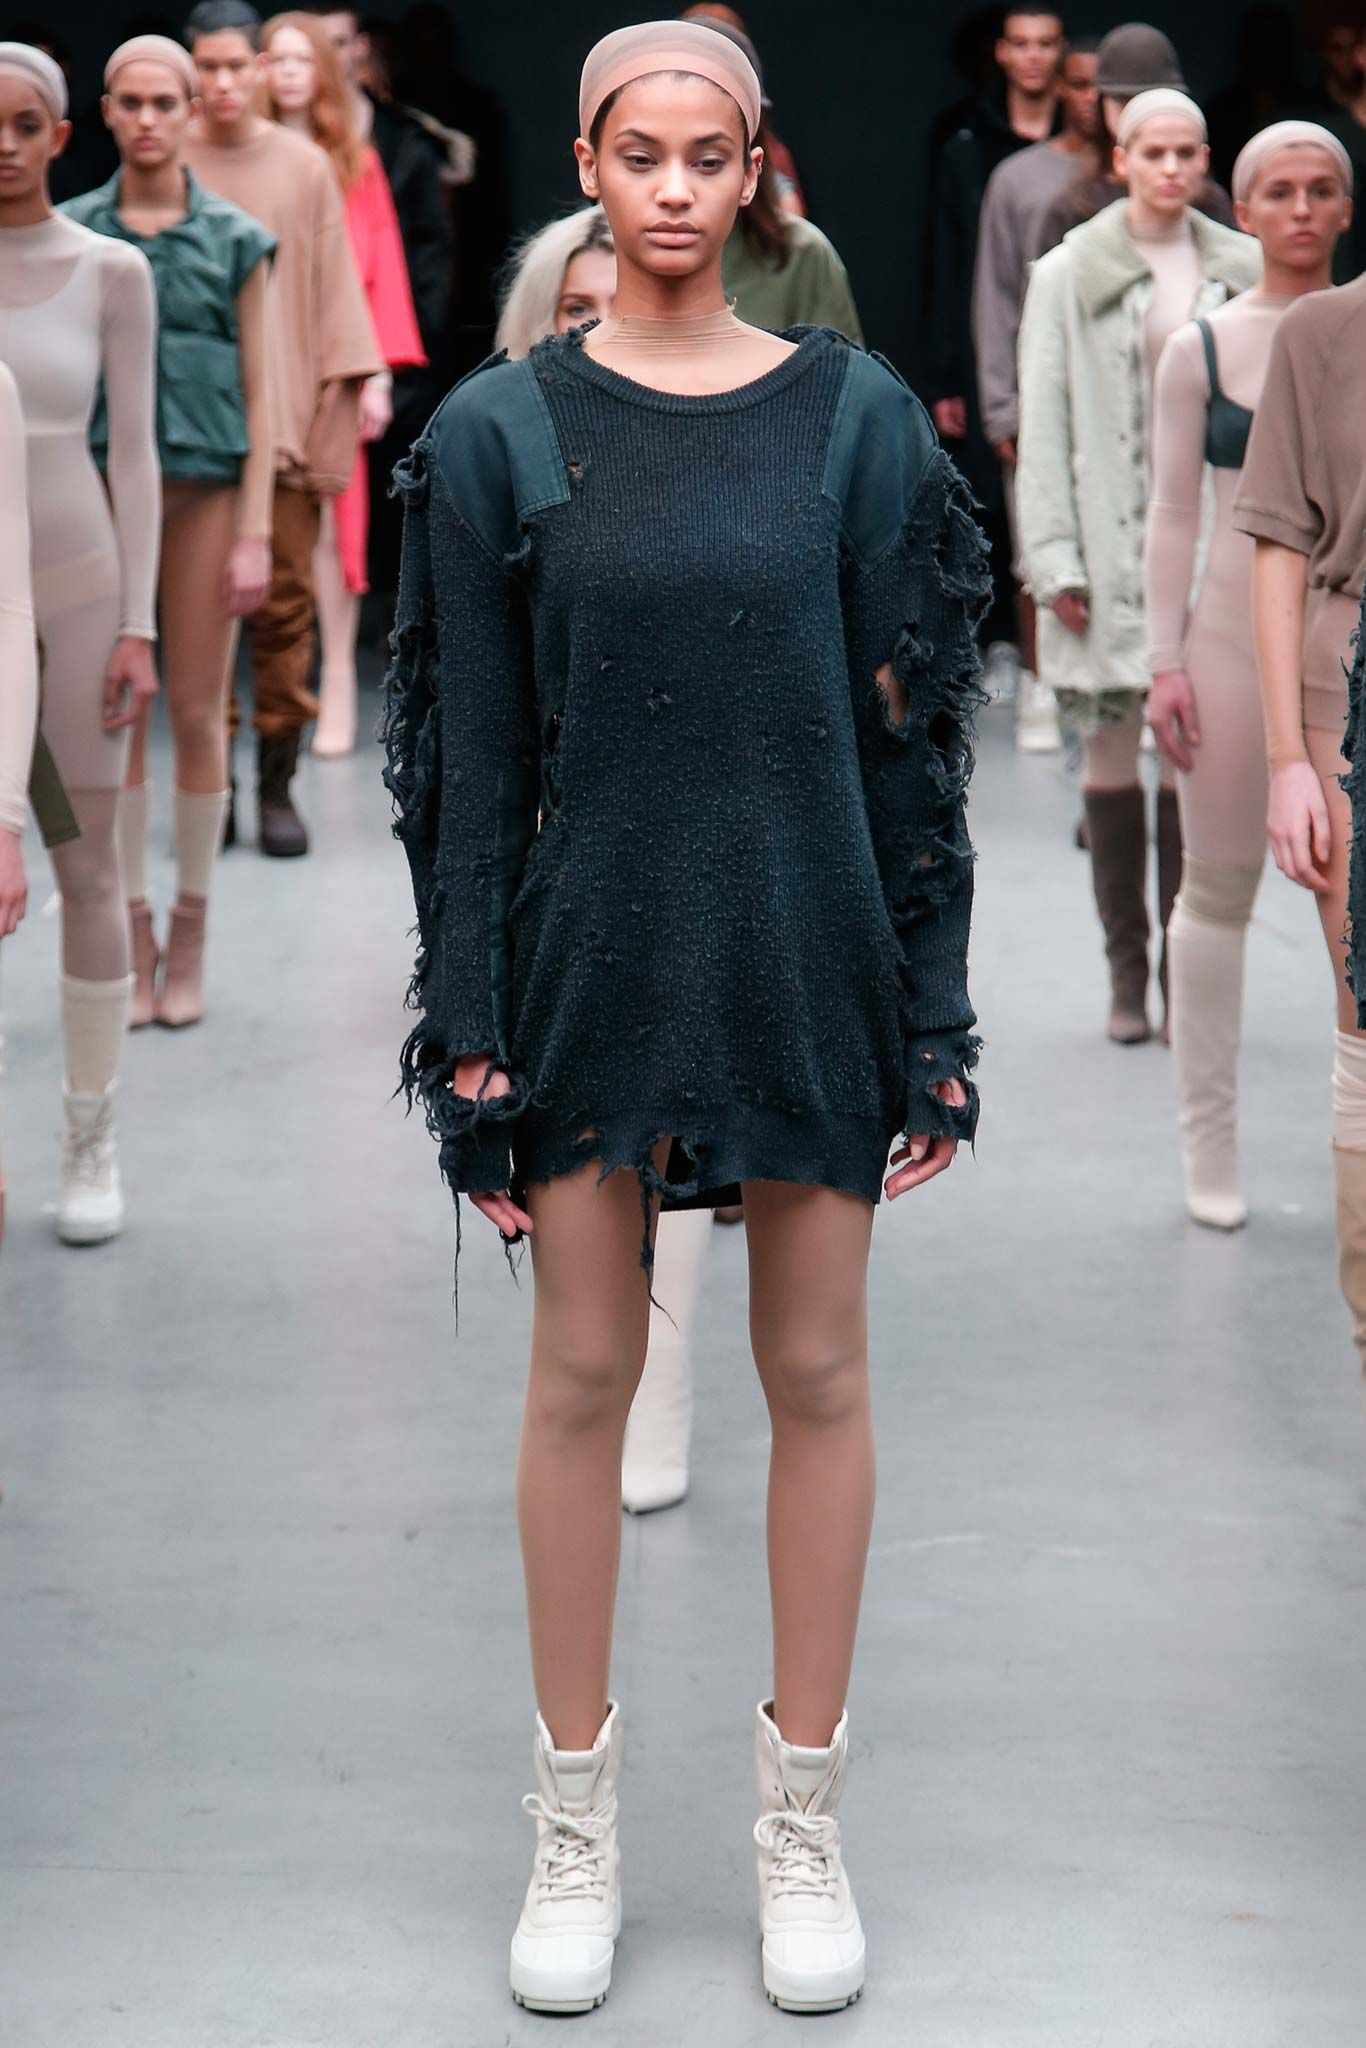 e530a47983036 Kanye West x Adidas Originals Fall 2015 Ready-to-Wear - Collection -  Gallery - Style.com